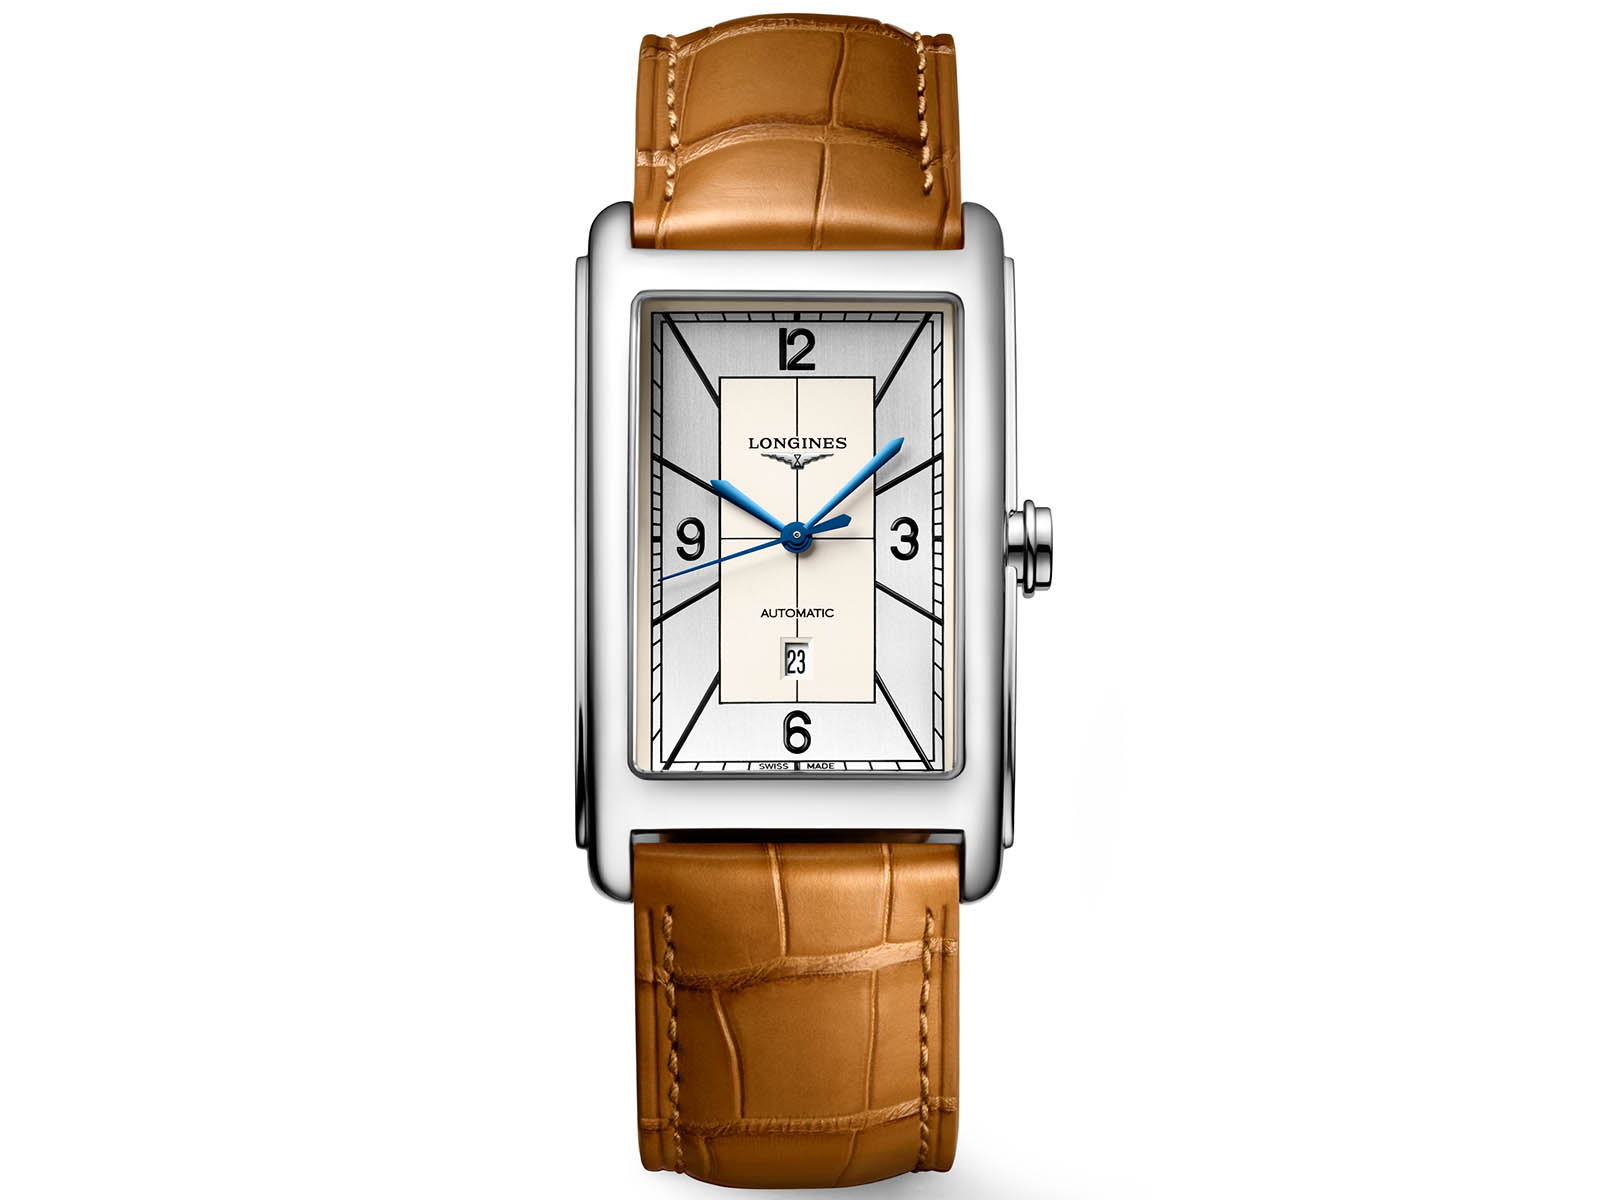 l5-767-4-73-0-longines-dolcevita-automatic-art-deco-sector-dial-4.jpg